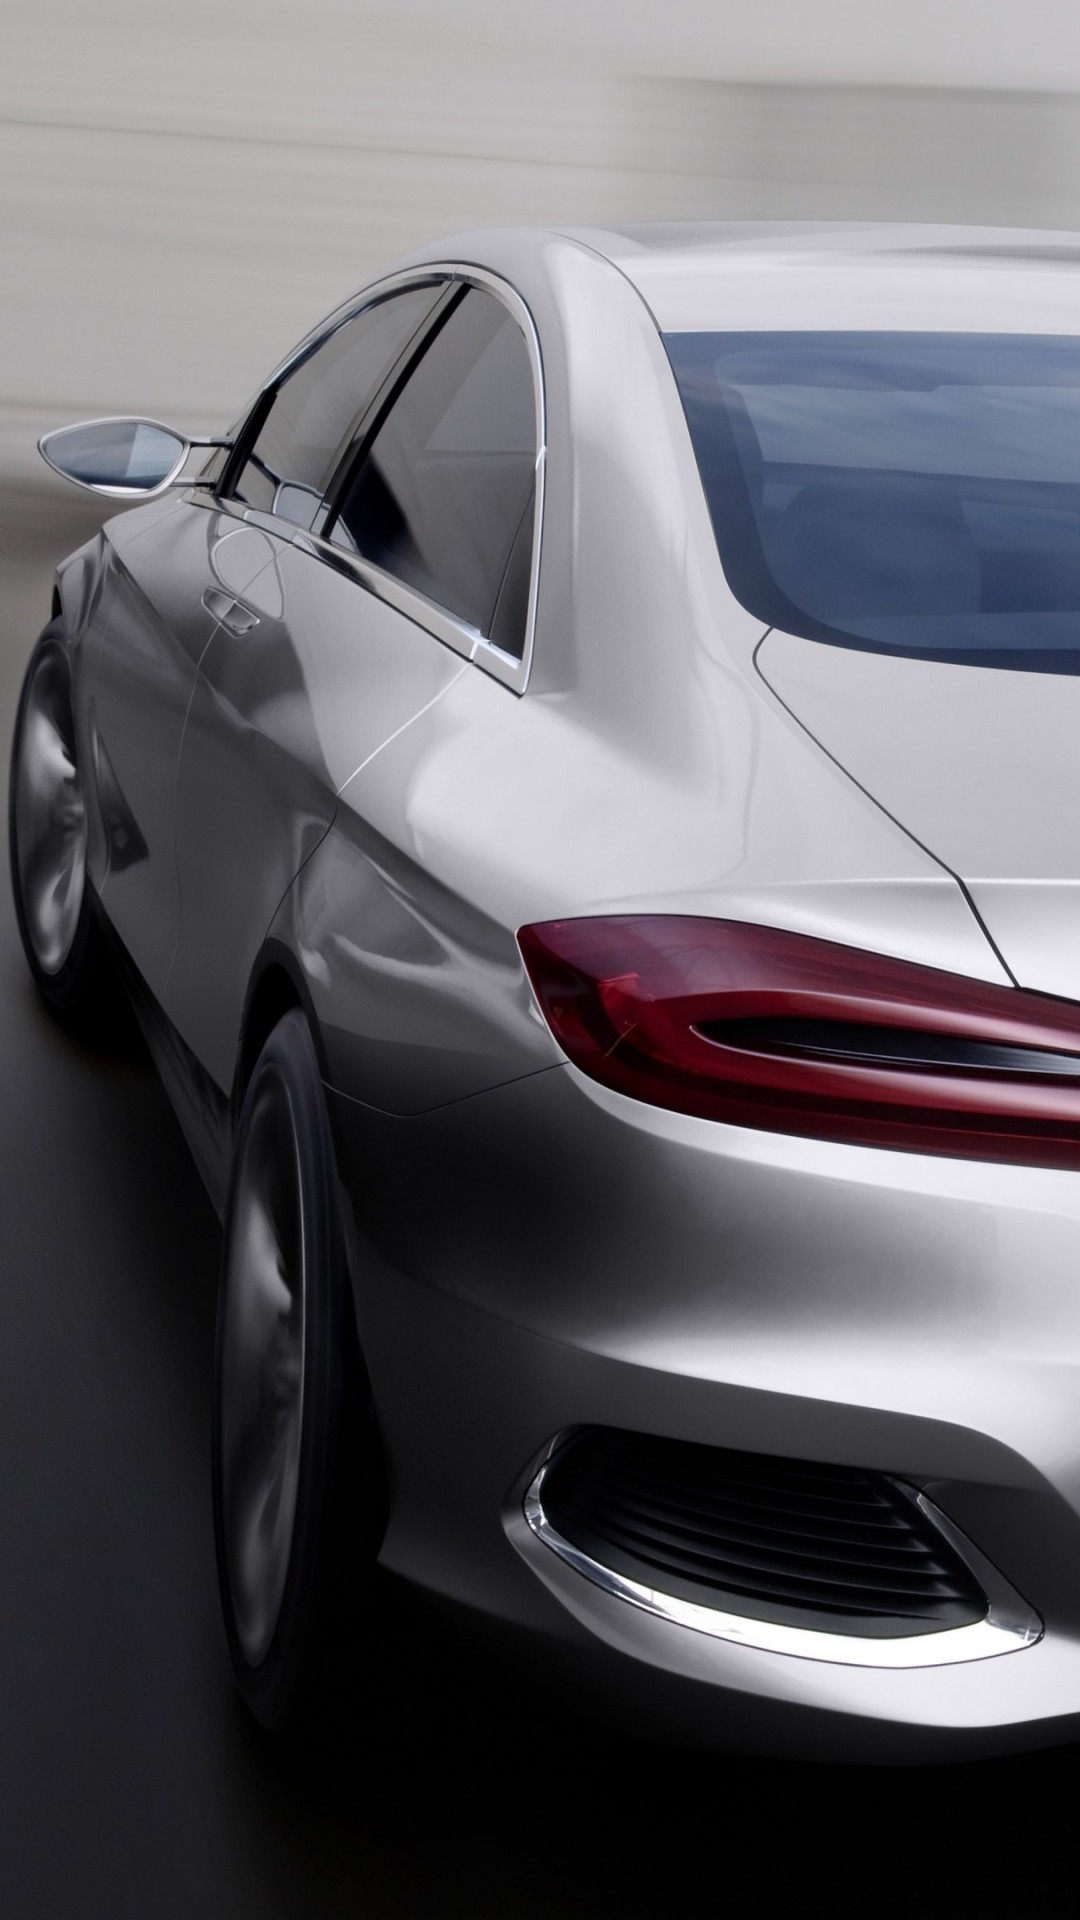 Mercedes Benz F800 Concept Rear View Wallpaper for SONY Xperia Z1